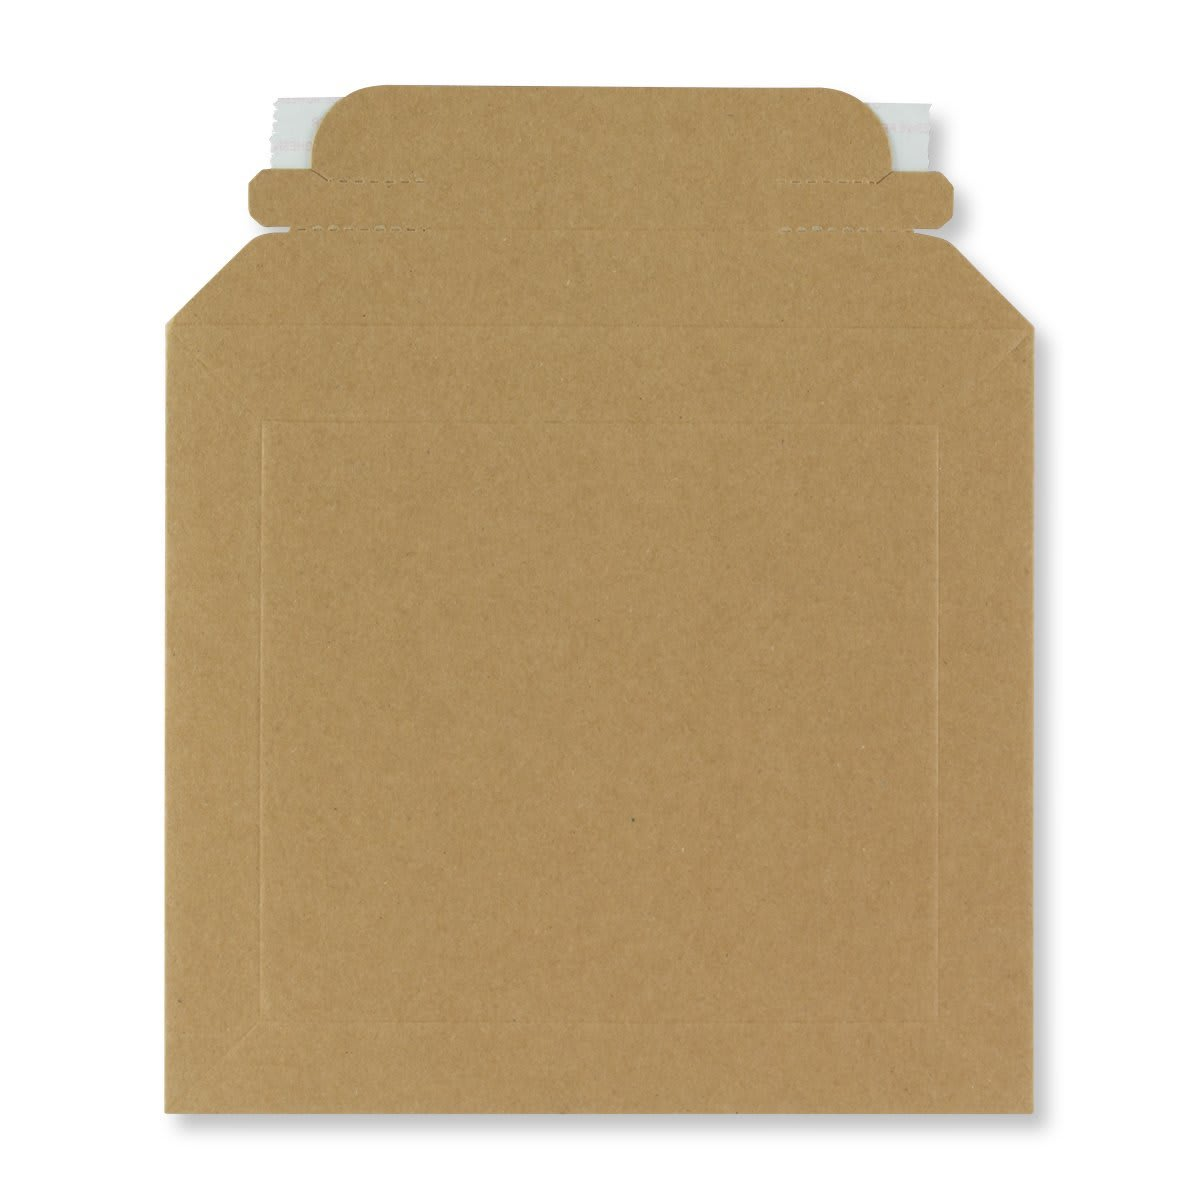 164 x 180mm CAPACITY BOOK MAILERS 400GSM